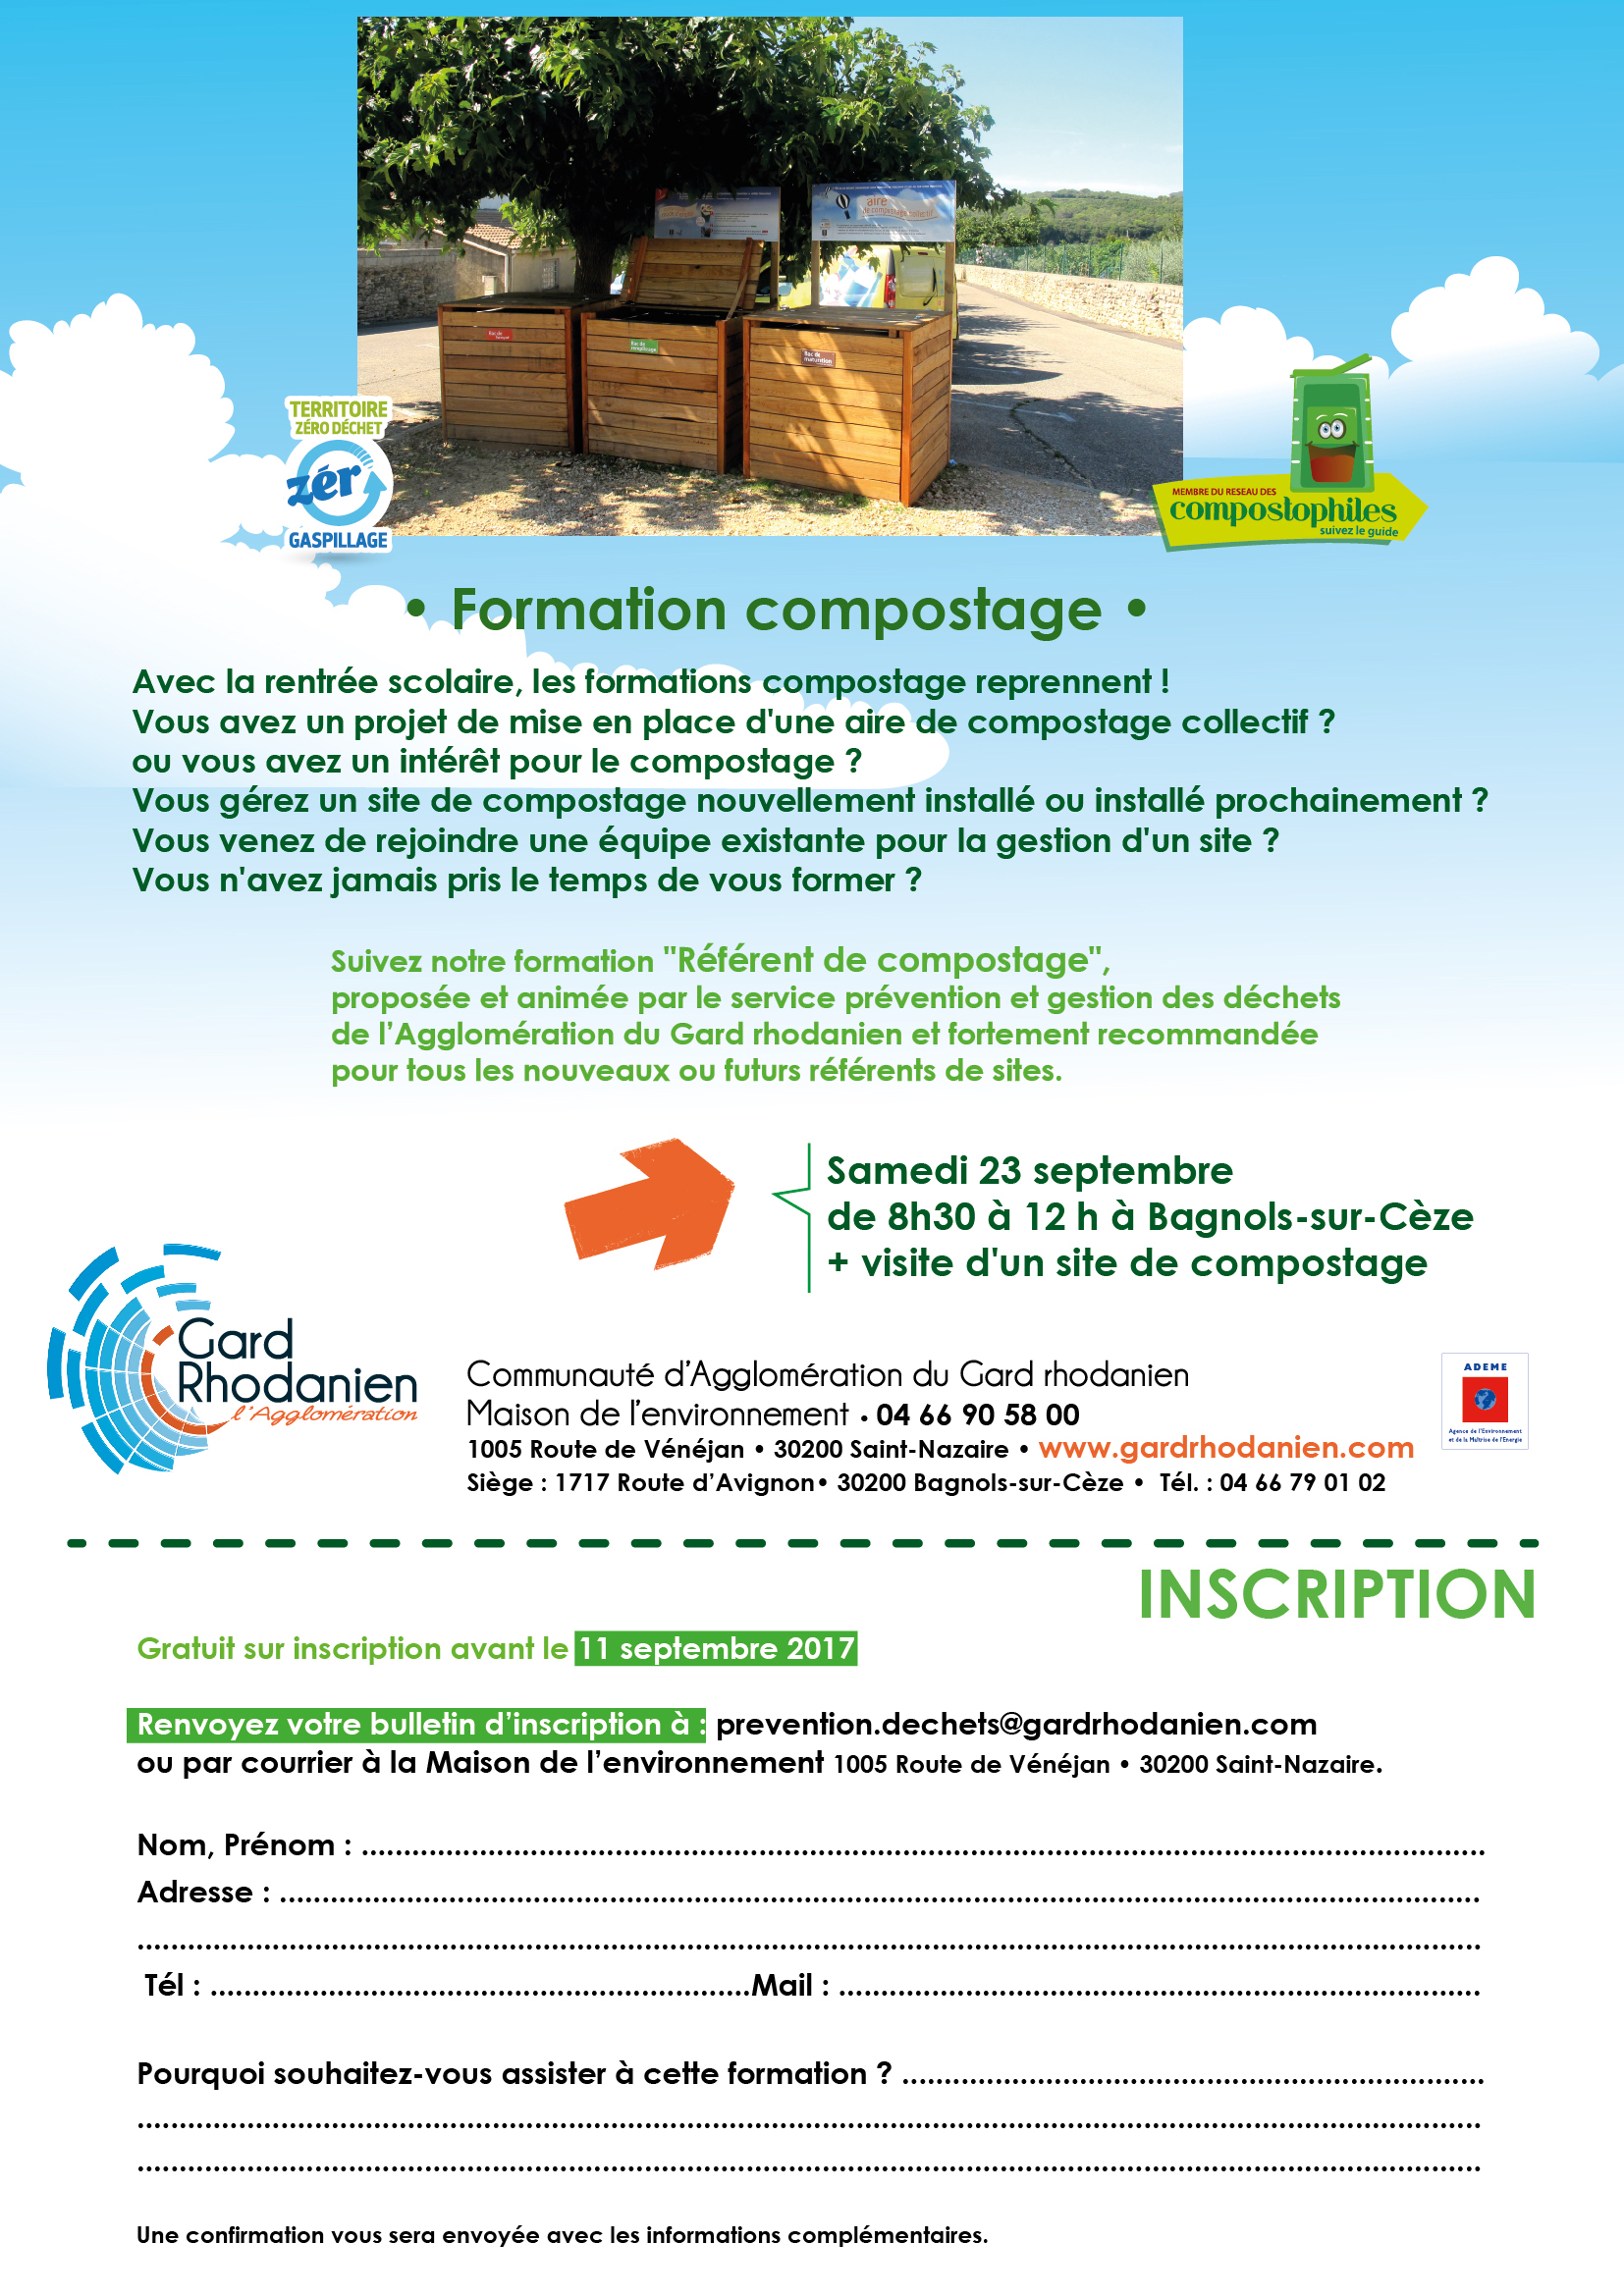 A4 FORMATIONCOMPOSTAGE 01